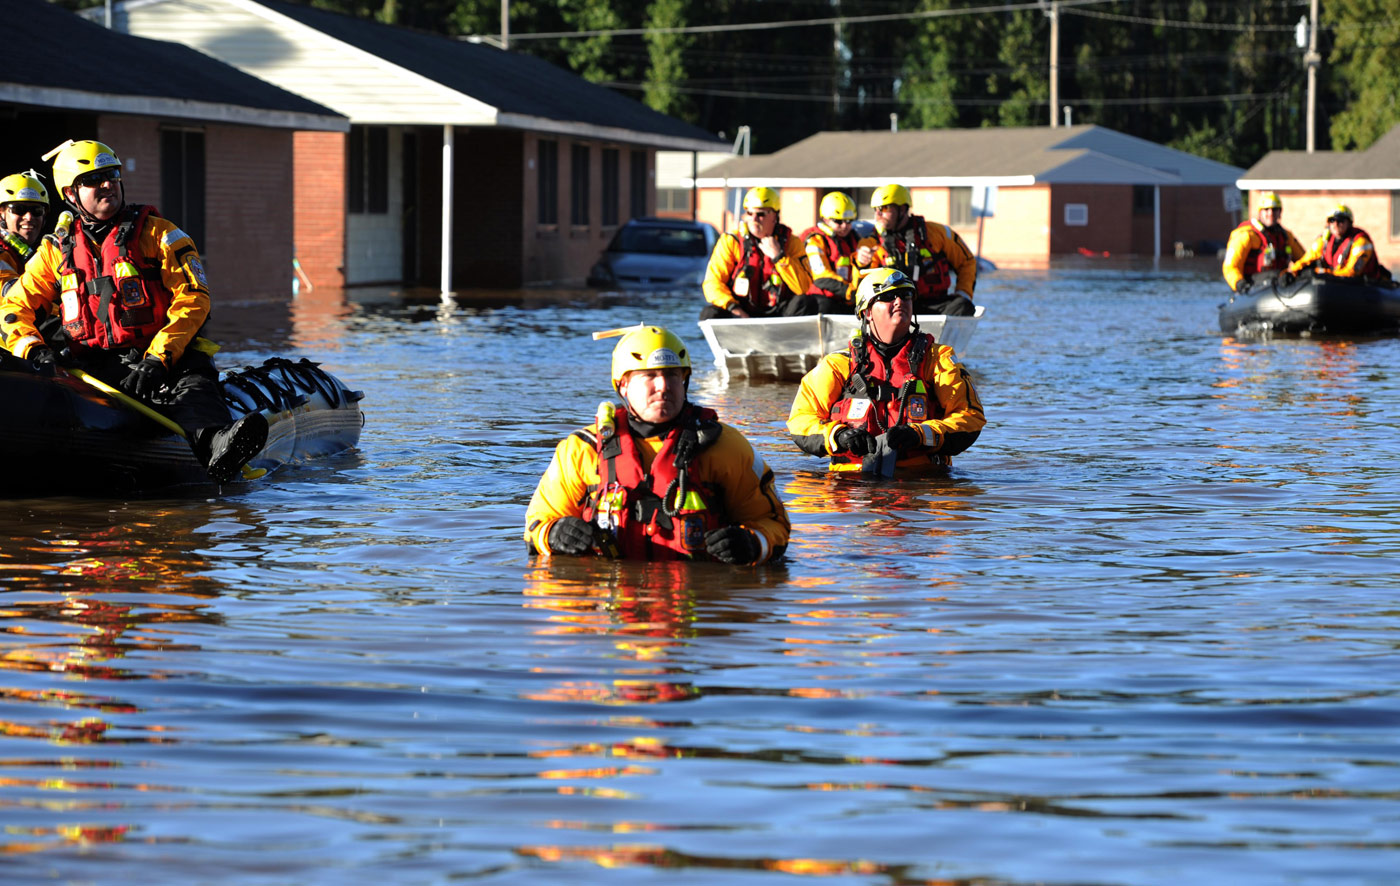 First Responder Safety Awareness During Hurricanes